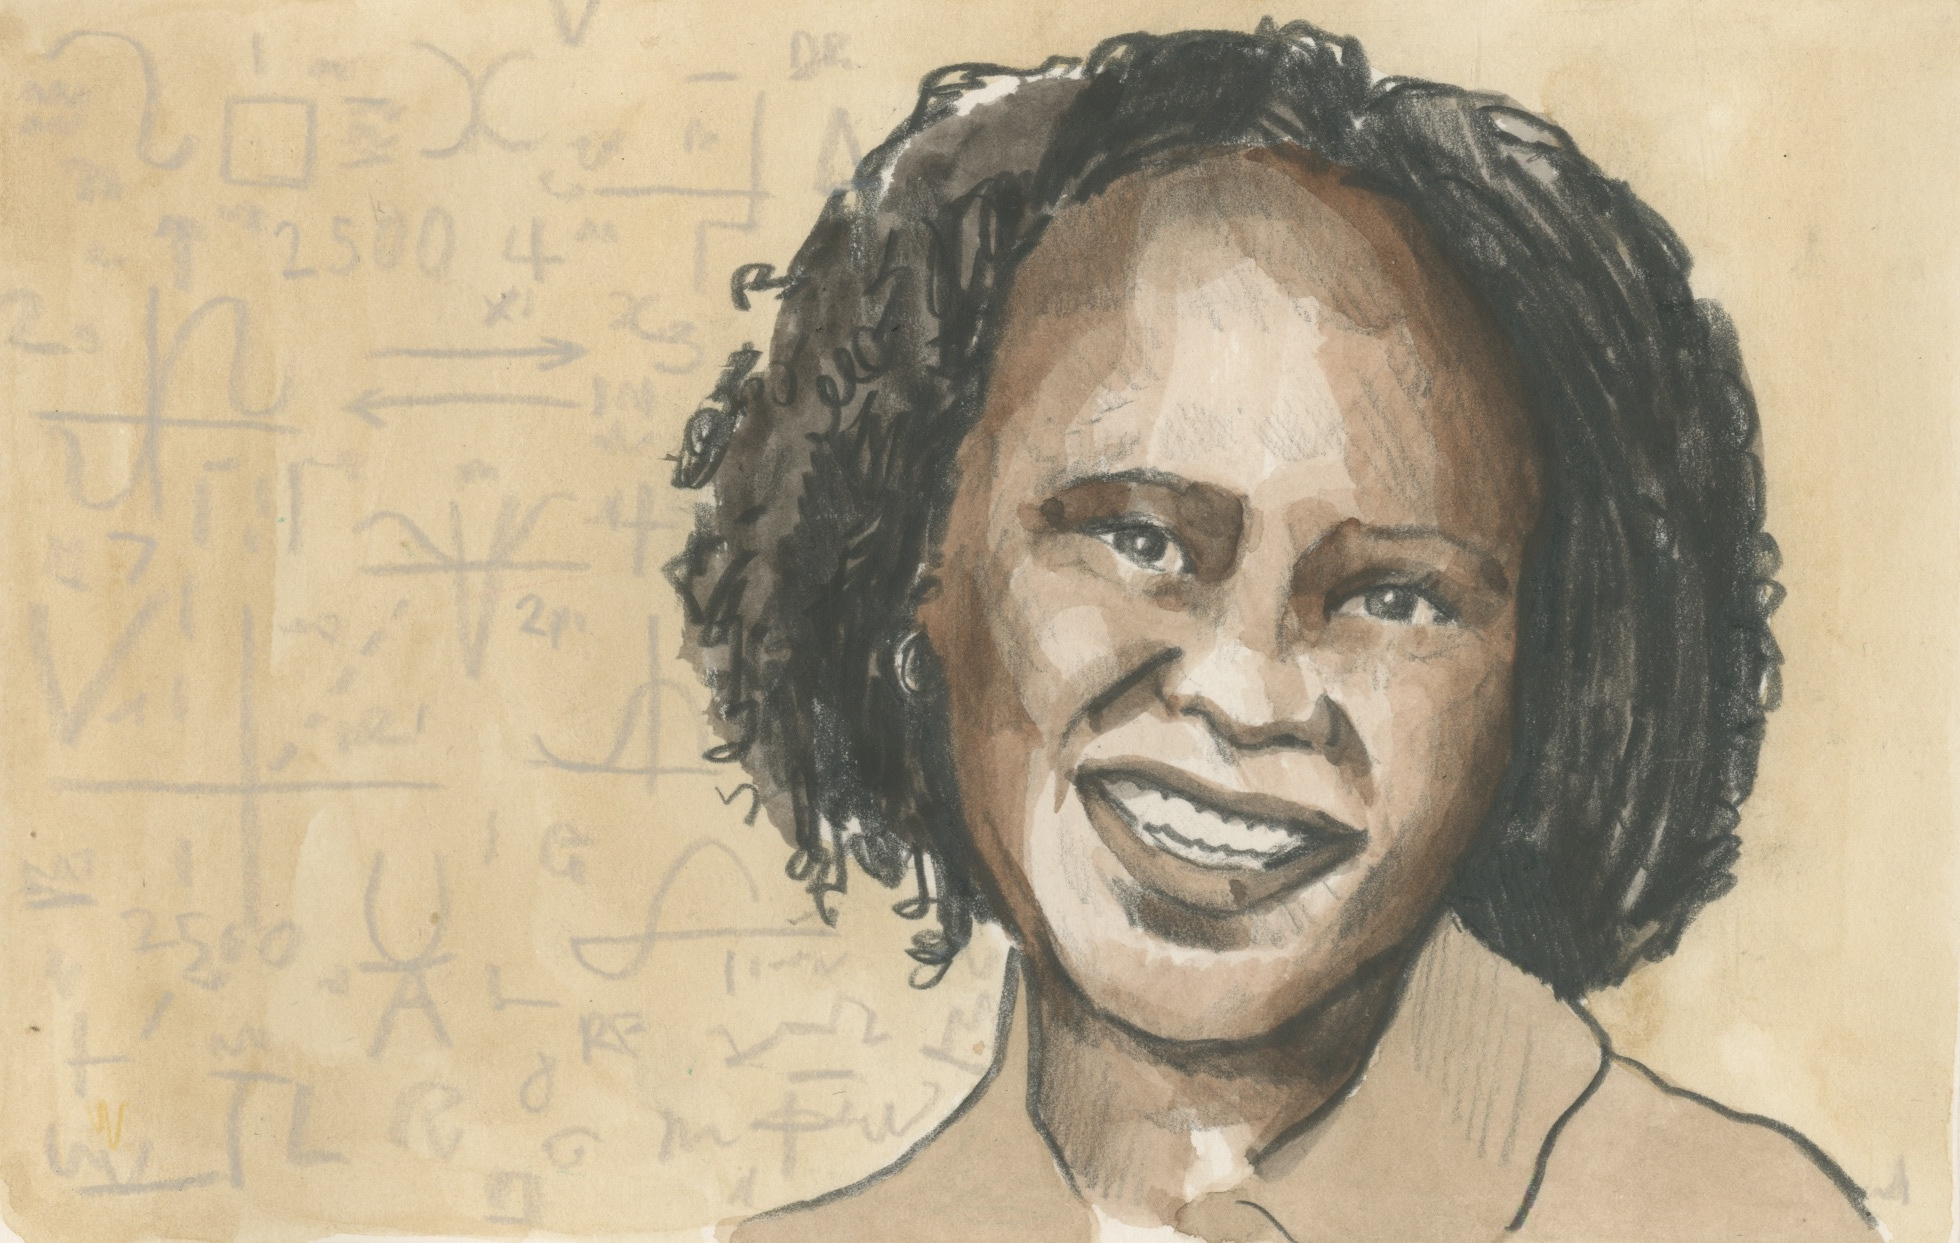 09/02/15Dr Patience Mthunzi is a TED 2015 Fellow. She is South African and a biophotonics physicist who is working to discover medical applications of laser technology, including the targeted treatment of HIV and cancer.